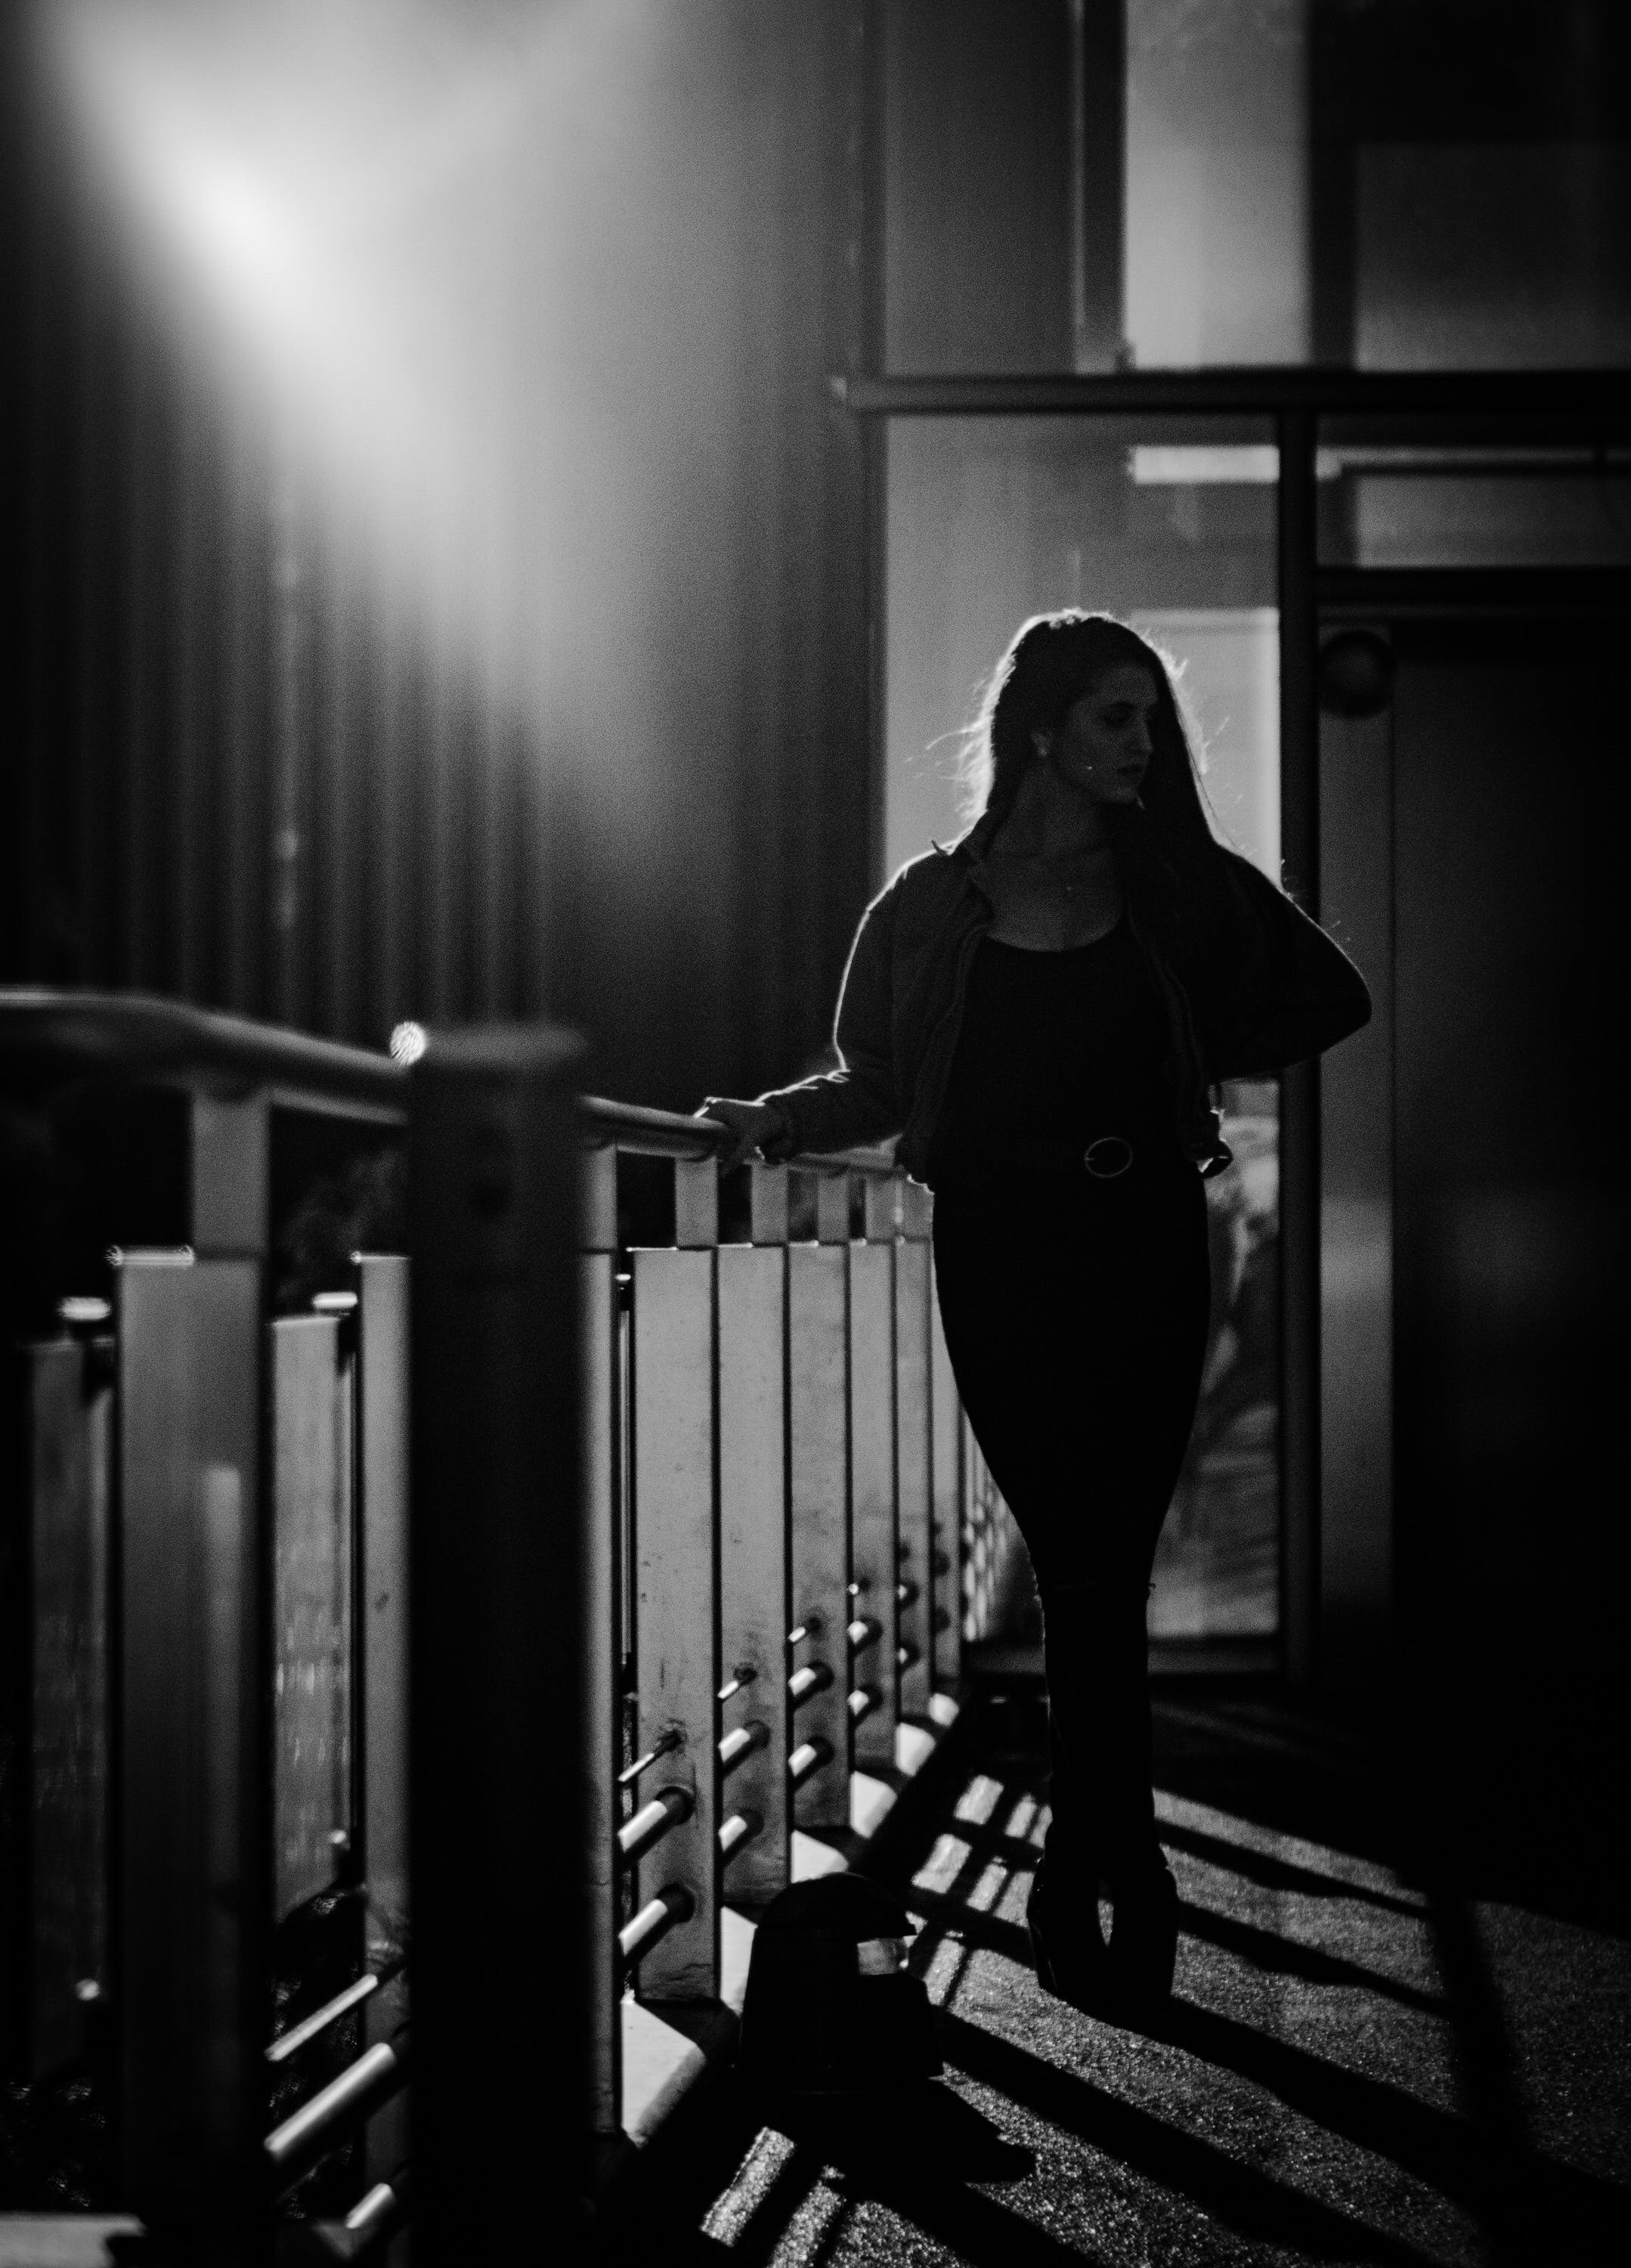 Woman Standing Near Metal Railings